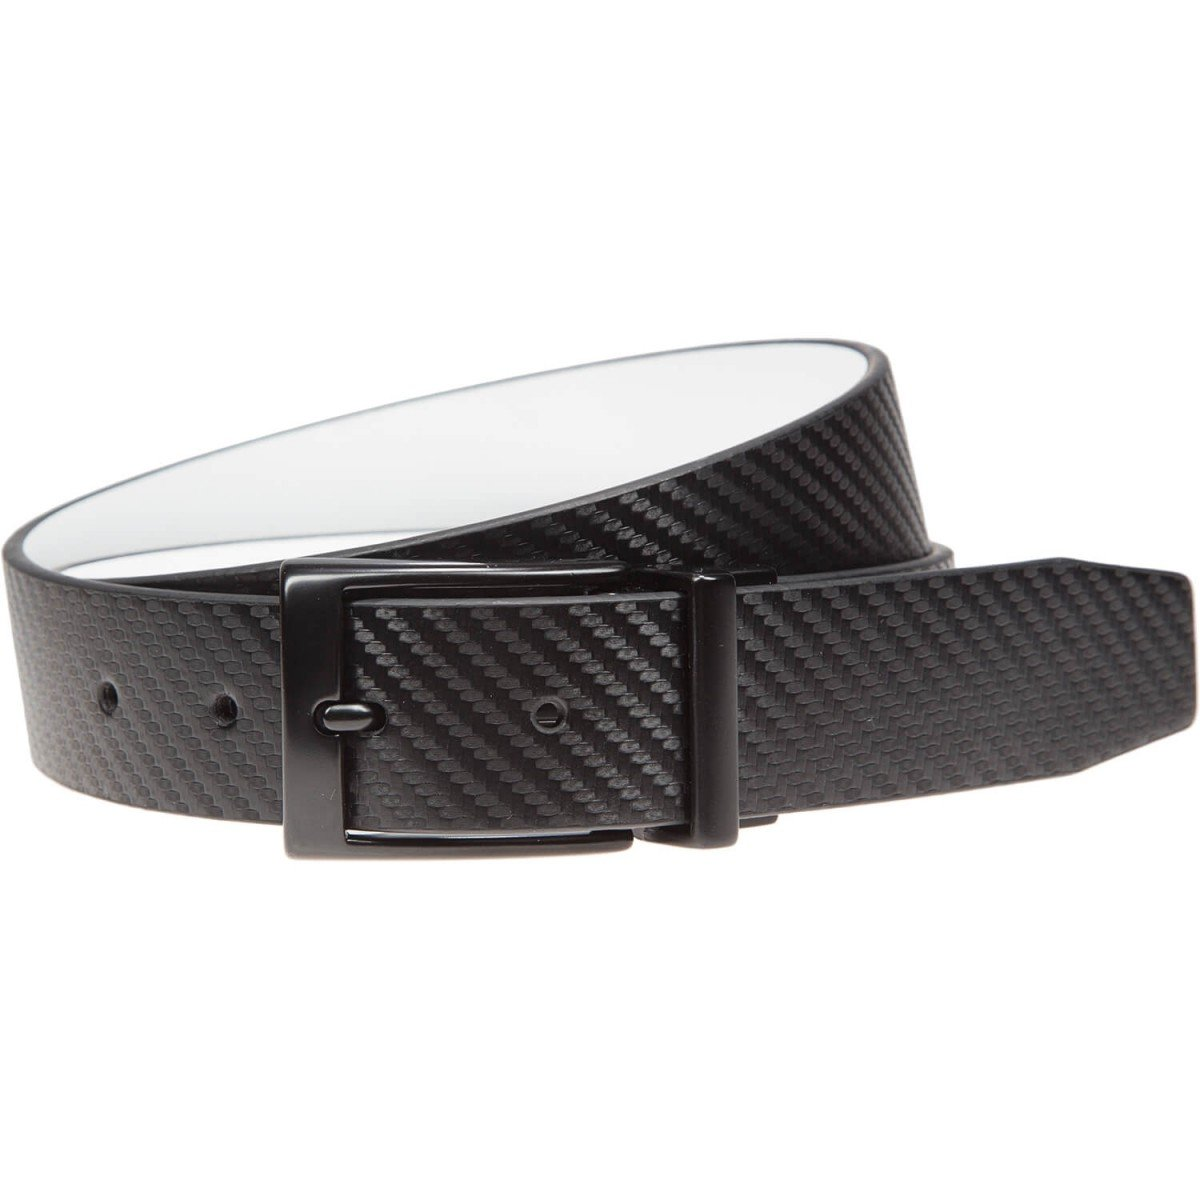 Nike Carbon Fiber Reversible Black/White Belt